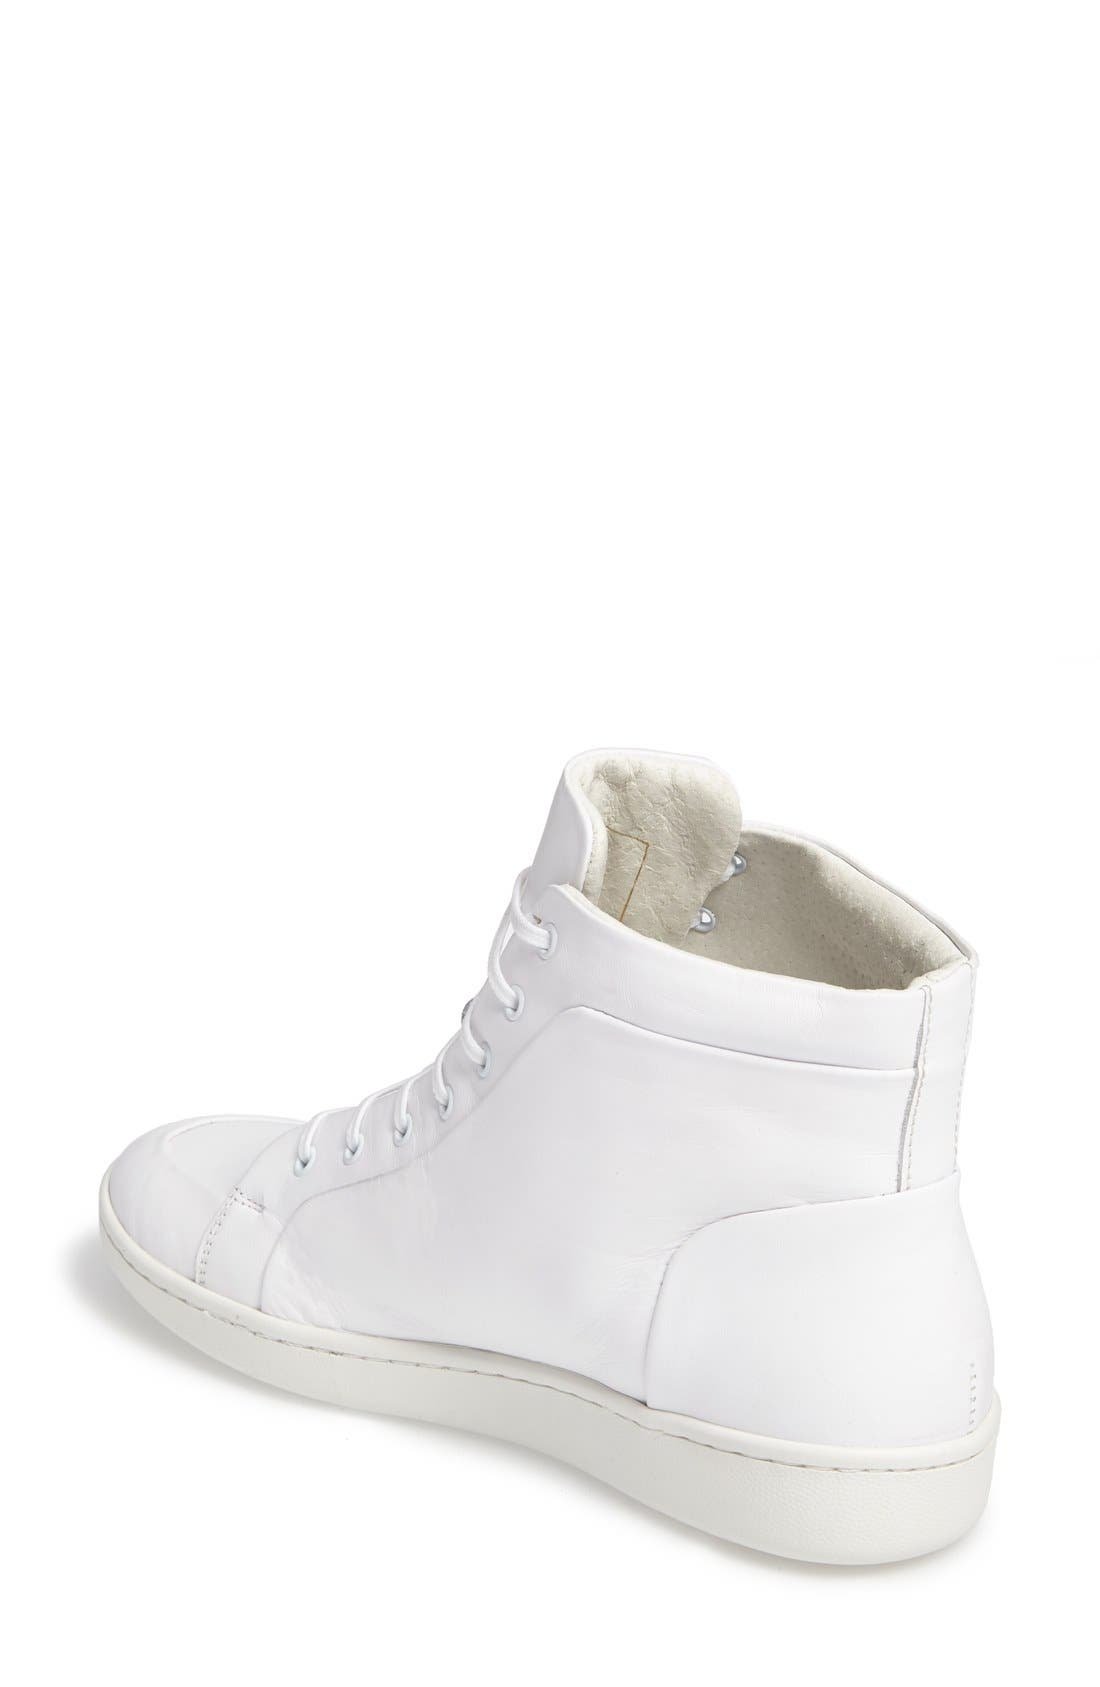 Alternate Image 2  - Kenneth Cole New York Molly High Top Sneaker (Women)